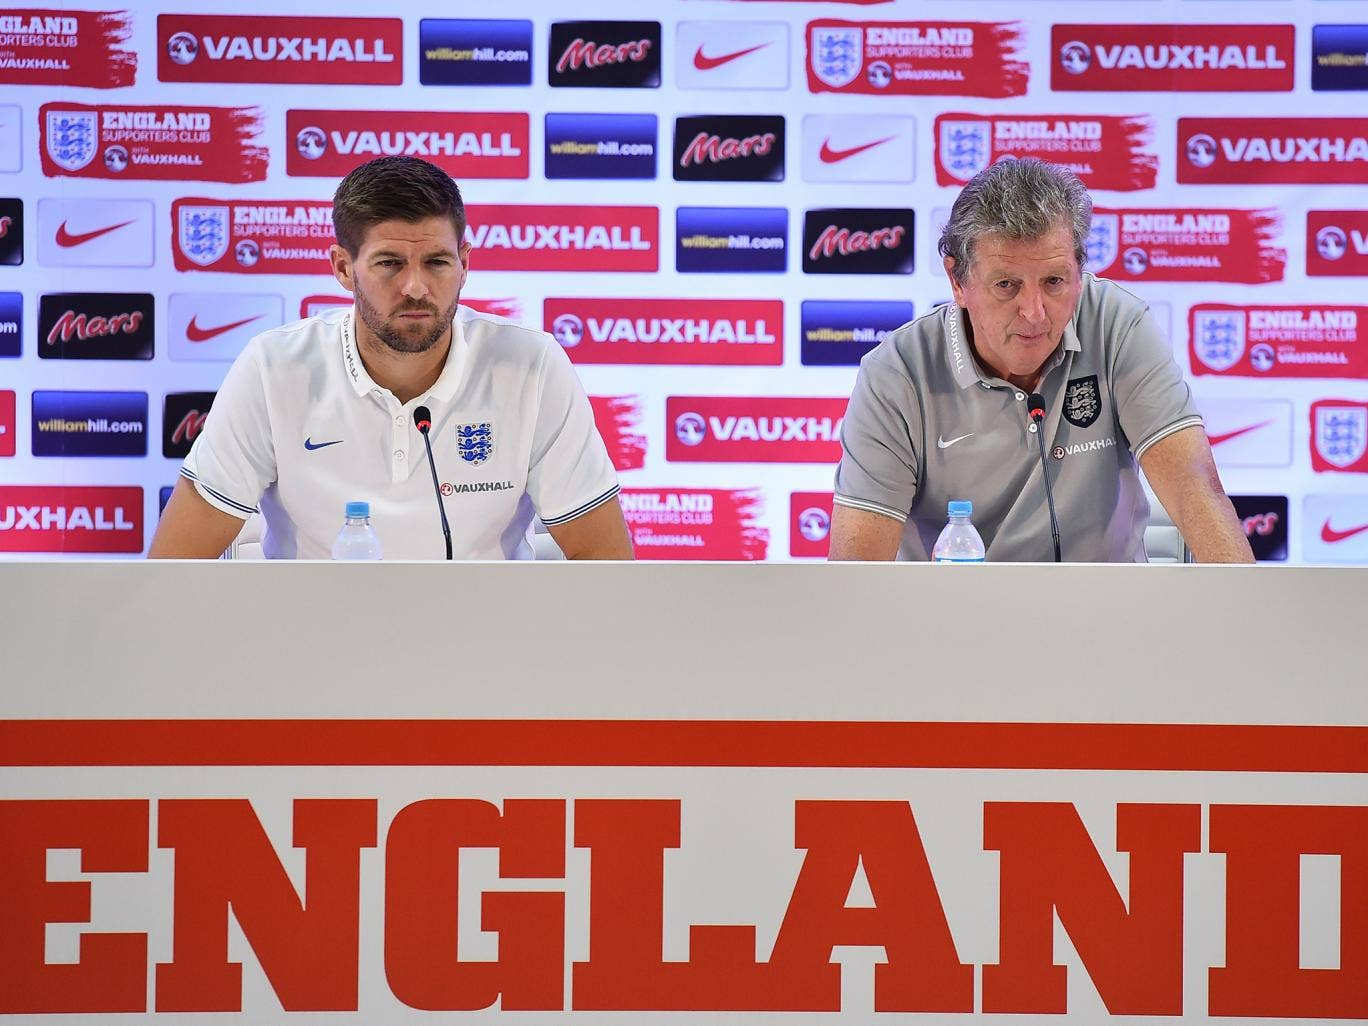 Steven Gerrard speaks to the media alongside Roy Hodgson